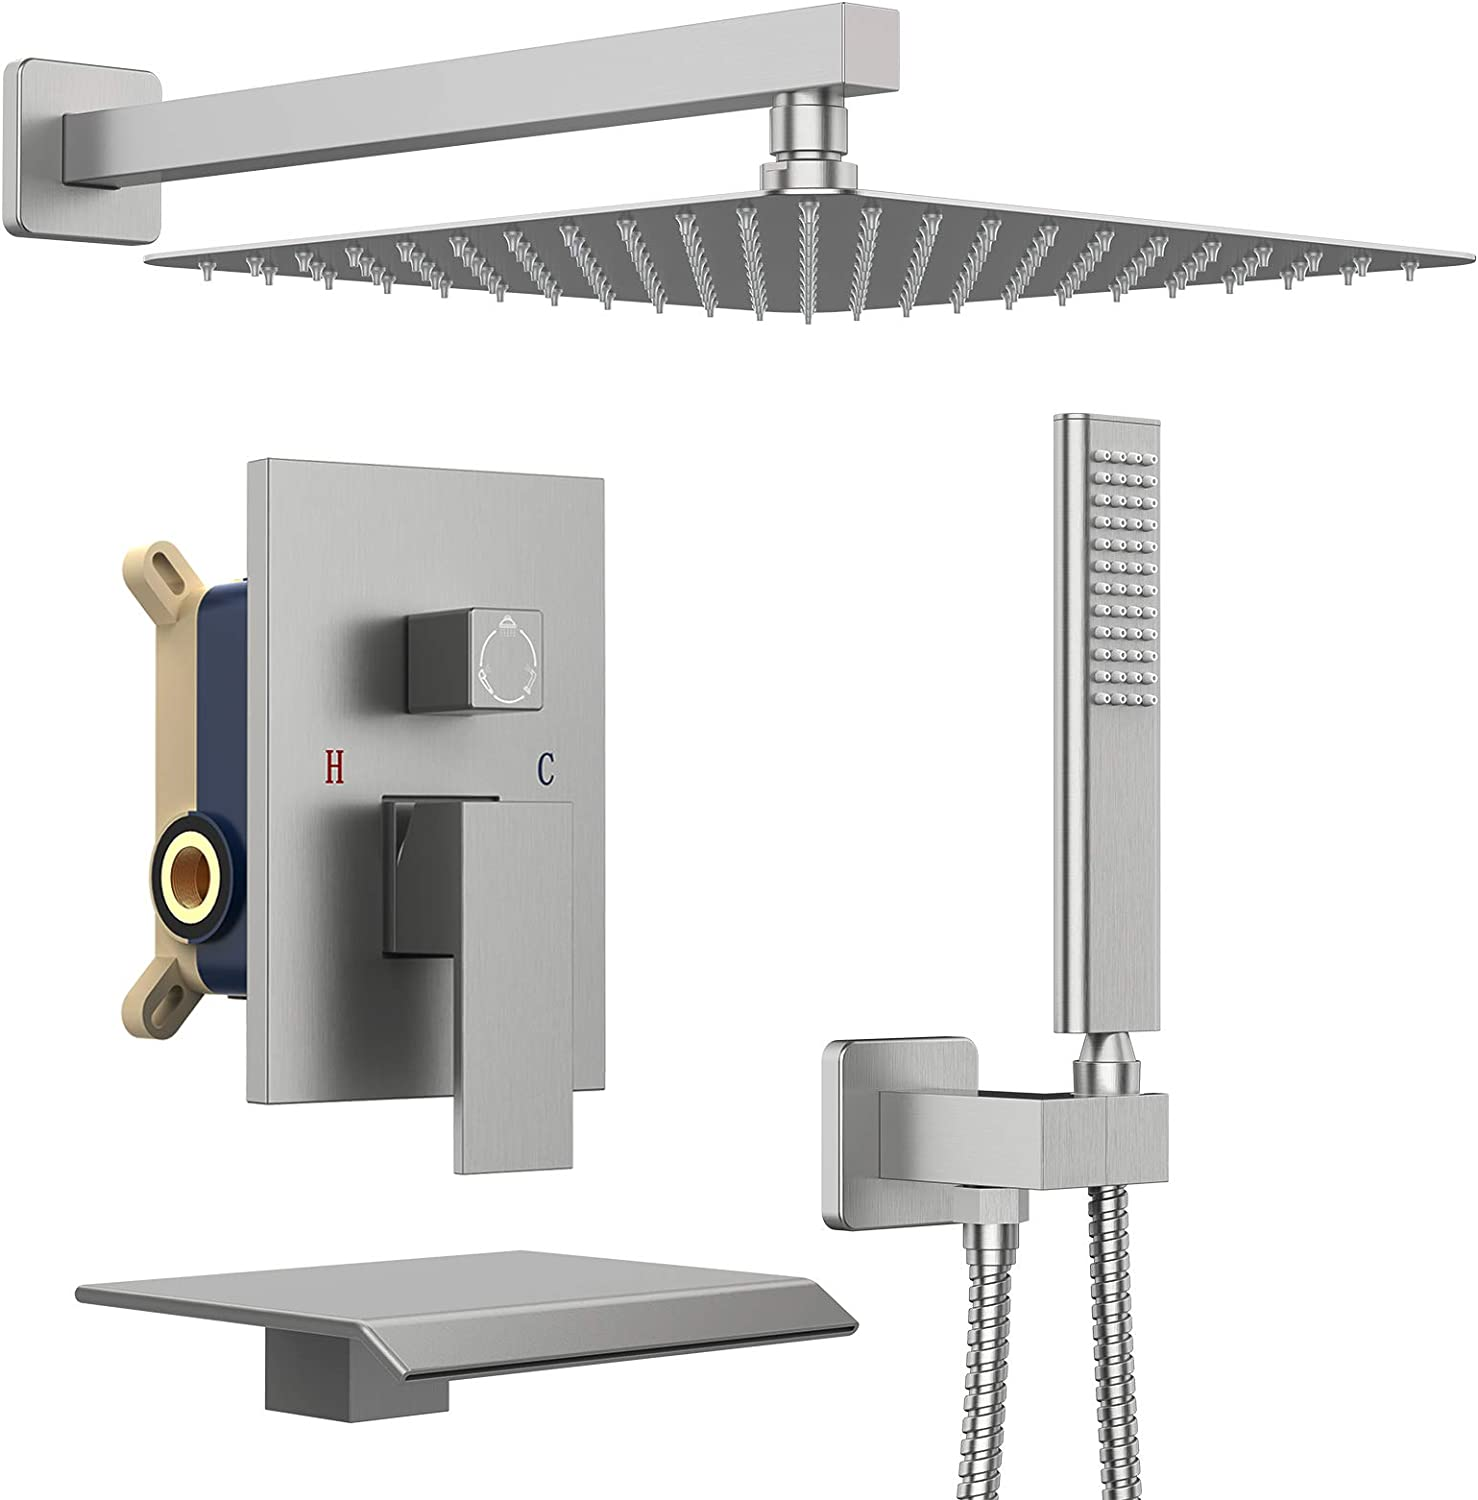 IRIBER Rain Shower System with Waterfall Tub Spout, 3-Function Shower Trim Kit Square Shower Faucet Set with 12 Inch Rain Shower Head and Handheld, Brushed Nickel